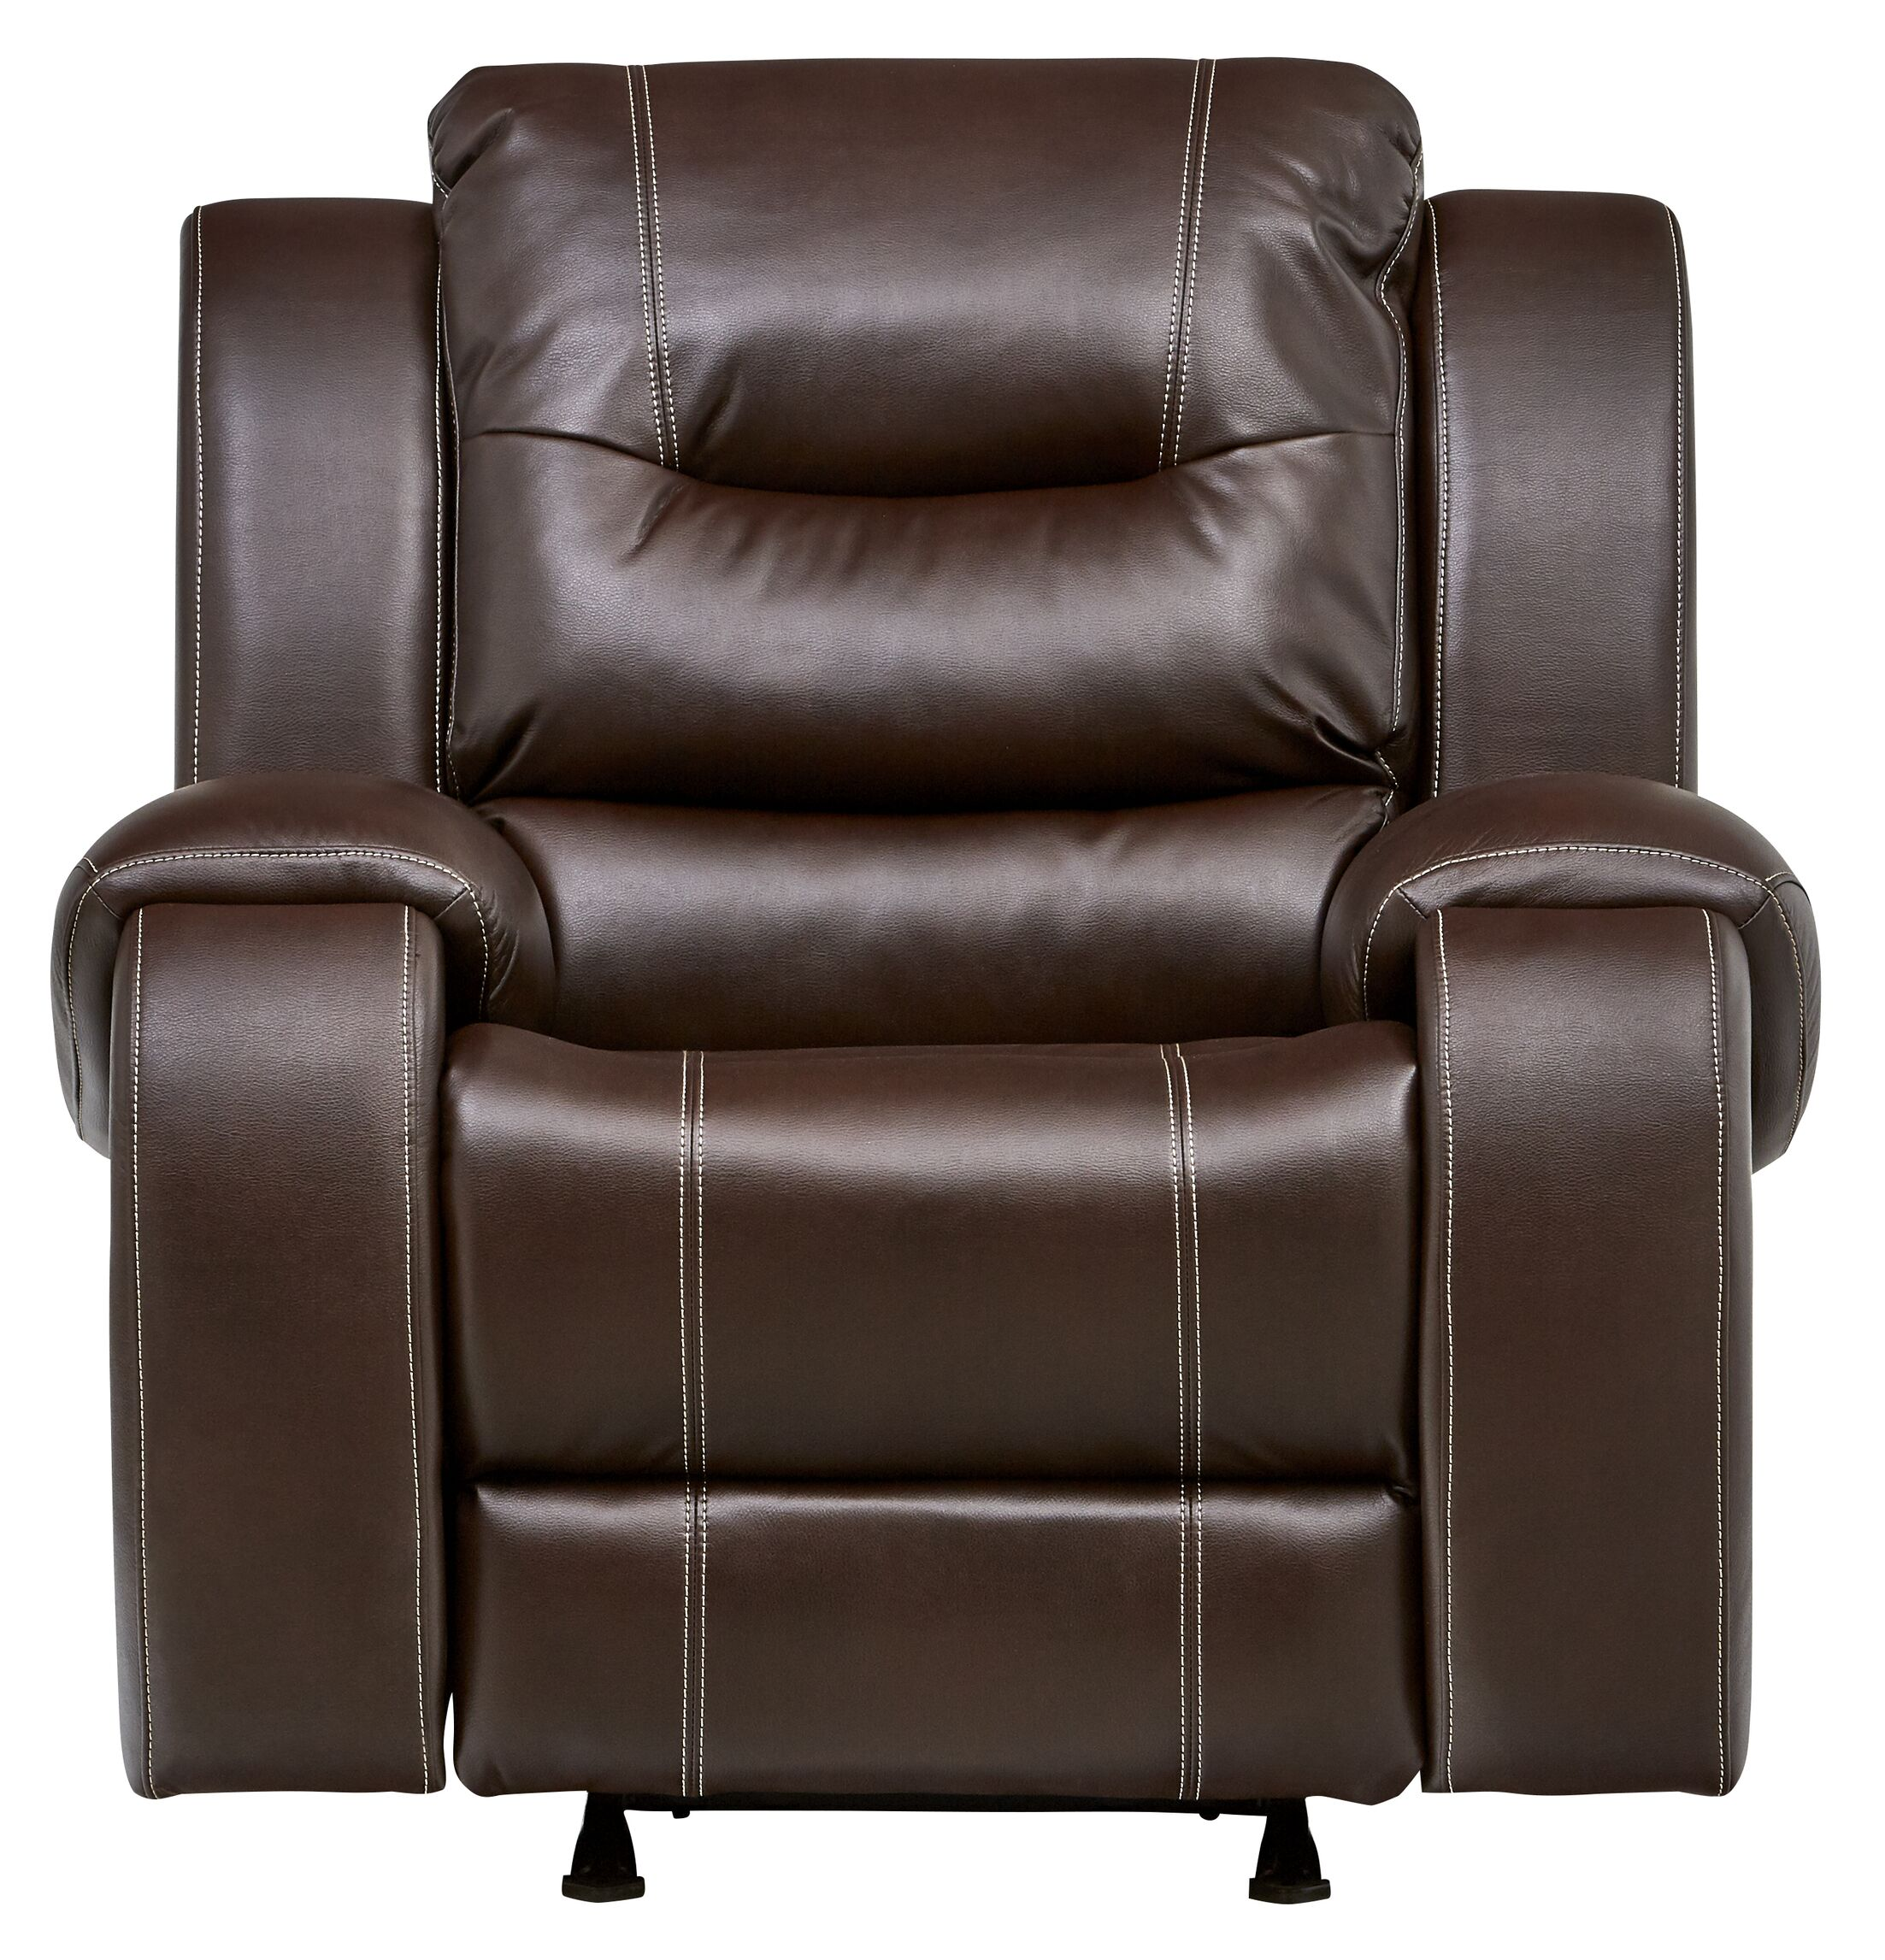 Daigre Recliner Motion Type: No Motion, Reclining Type: Power Recline, Upholstery: Umber